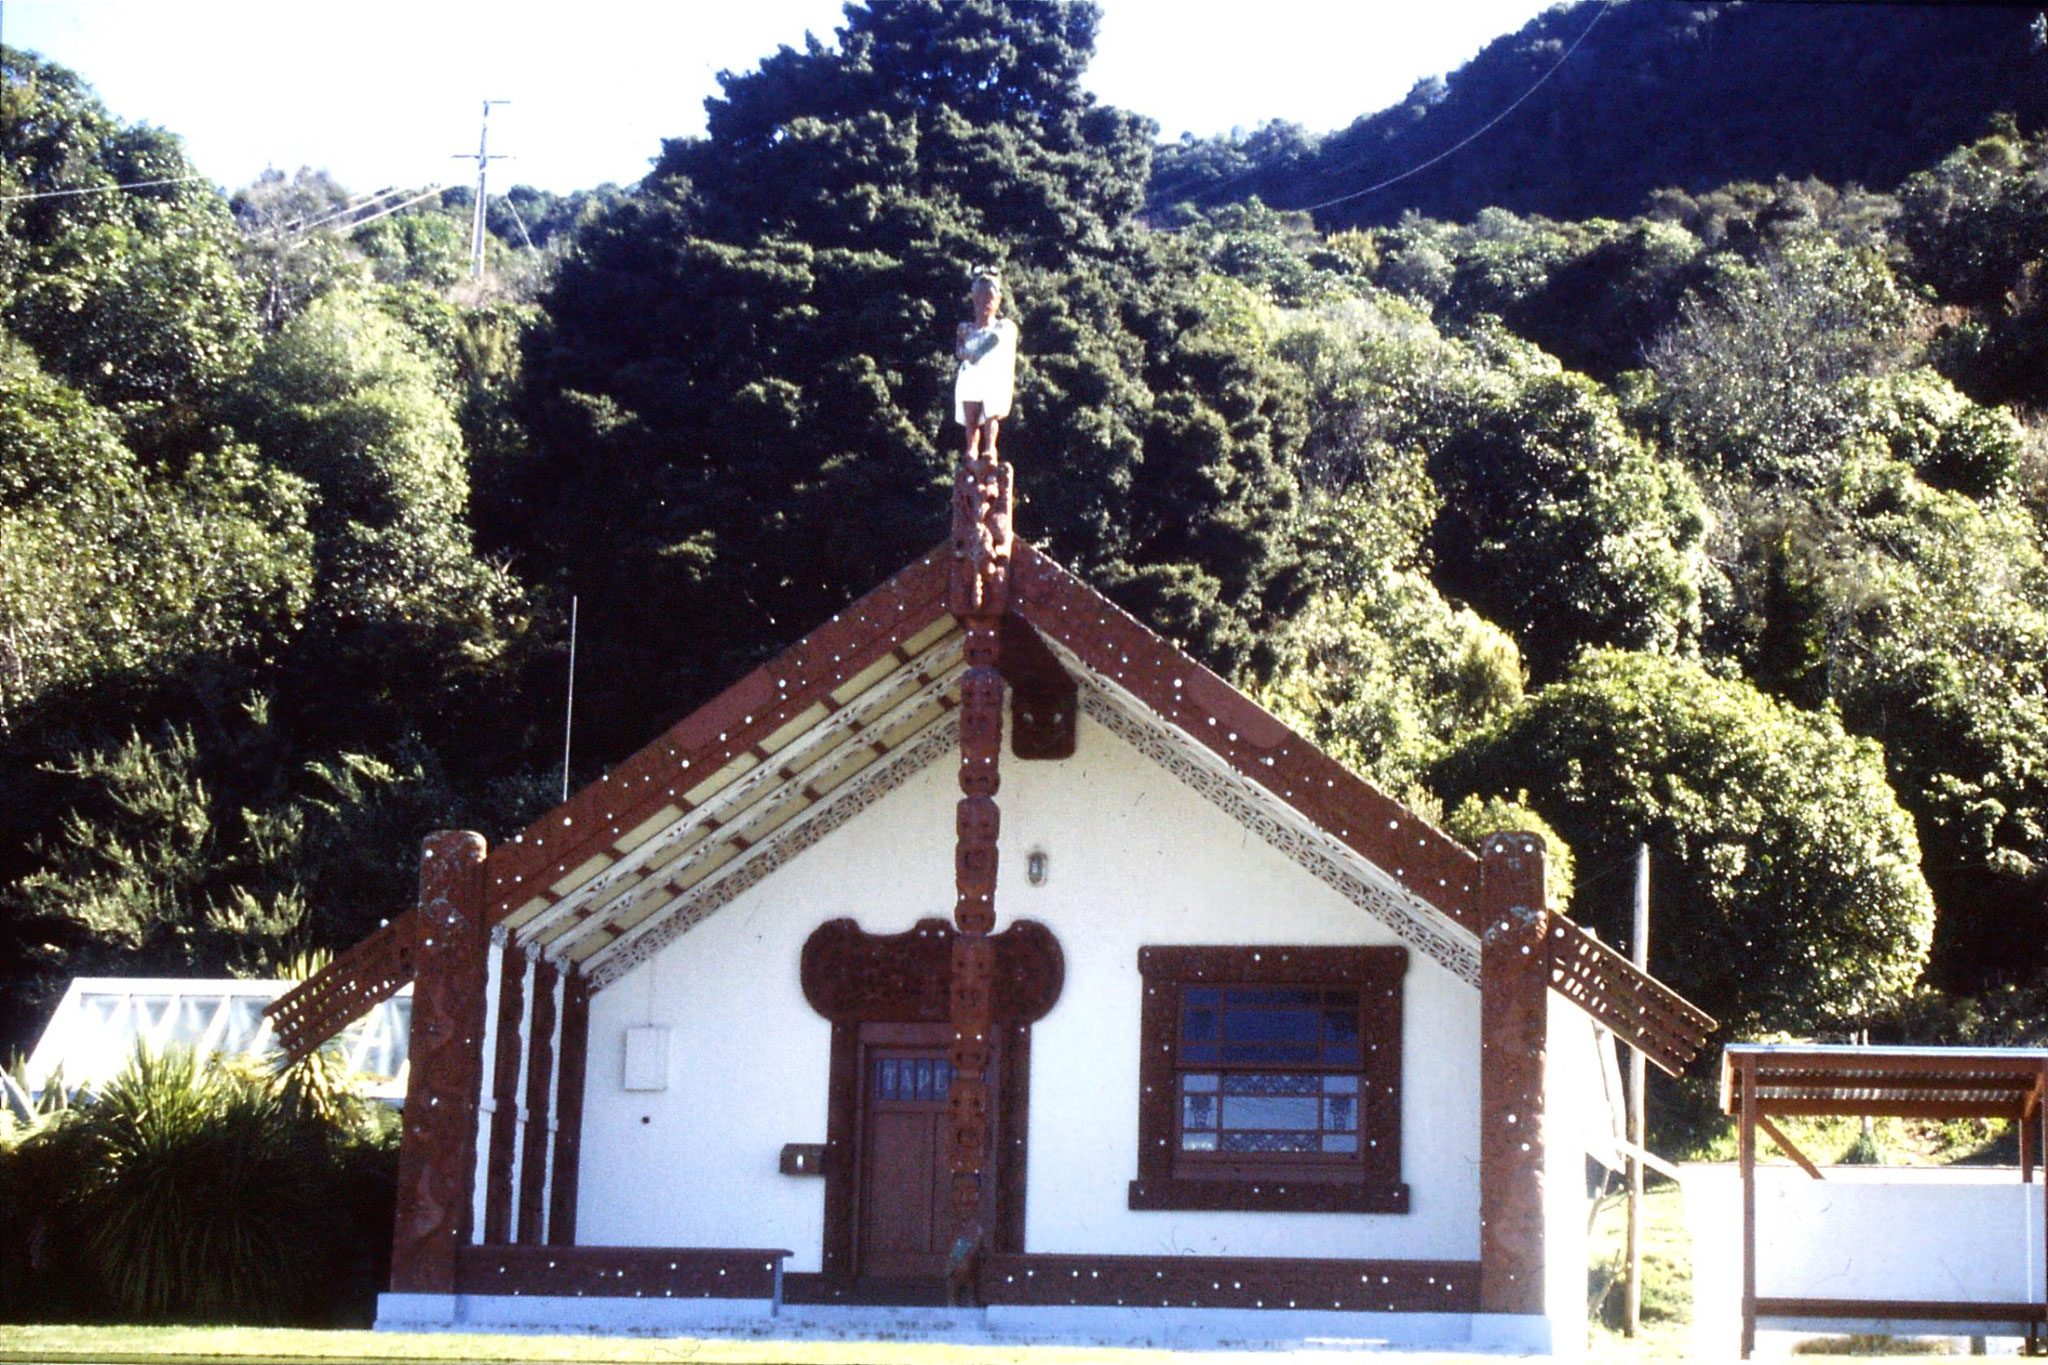 30/8/1990: 13: Maori meeting hall at Waihi near Turangi